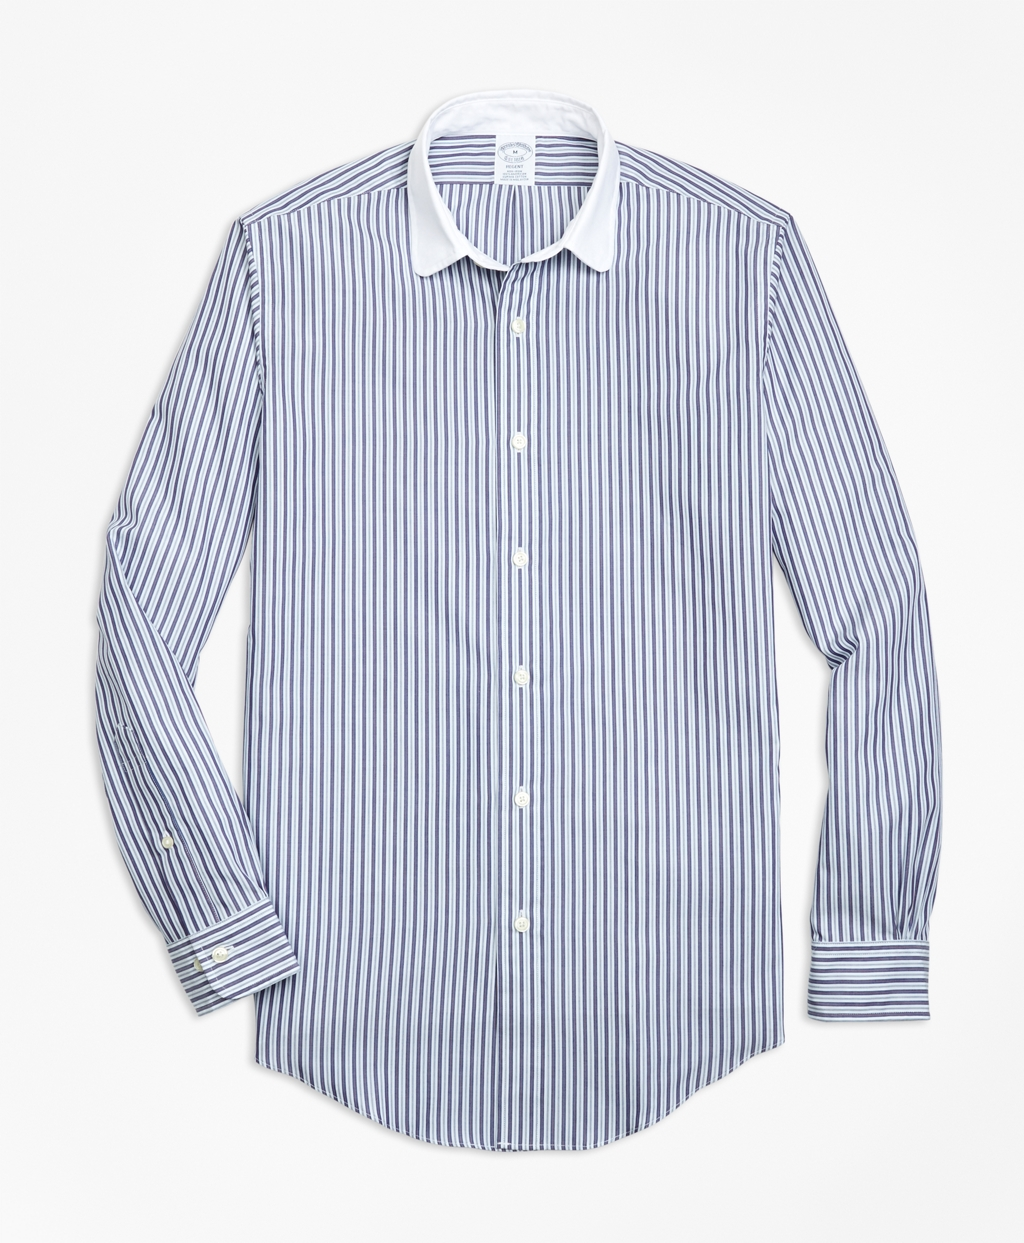 1920s Style Mens Shirts | Peaky Blinders Shirts and Collars Brooks Brothers Regent Fit Multi-Stripe Sport Shirt $92.00 AT vintagedancer.com